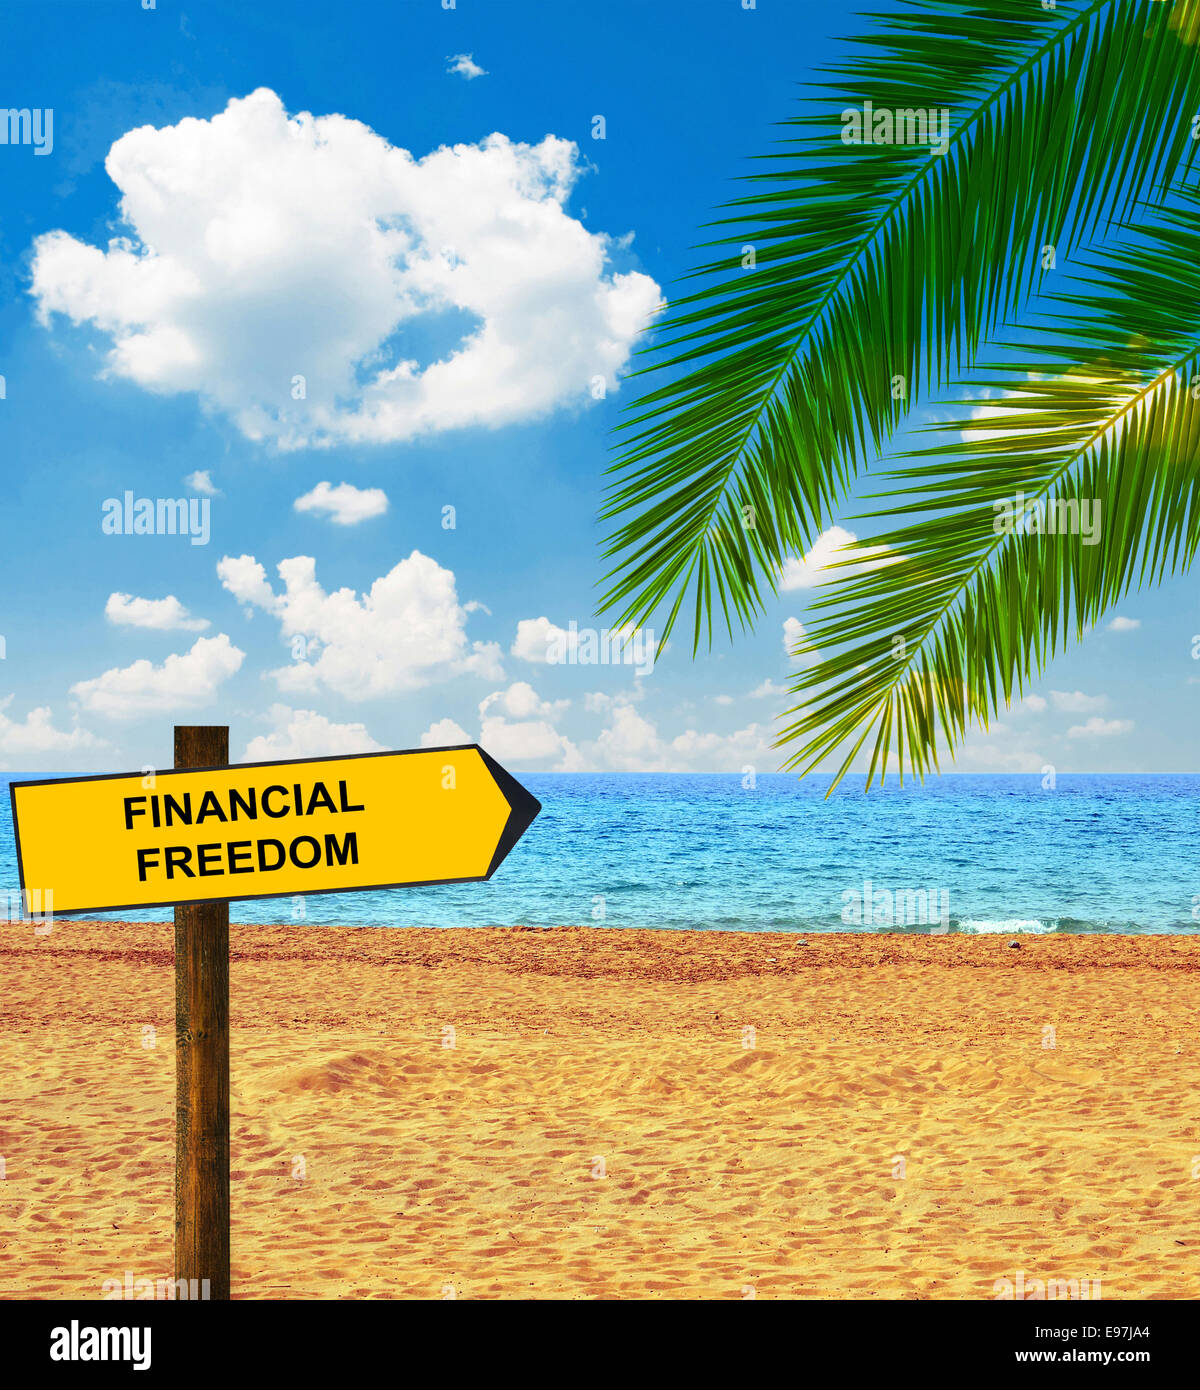 Stock Quote Sun Life Financial: Tropical Beach And Direction Board Saying FINANCIAL